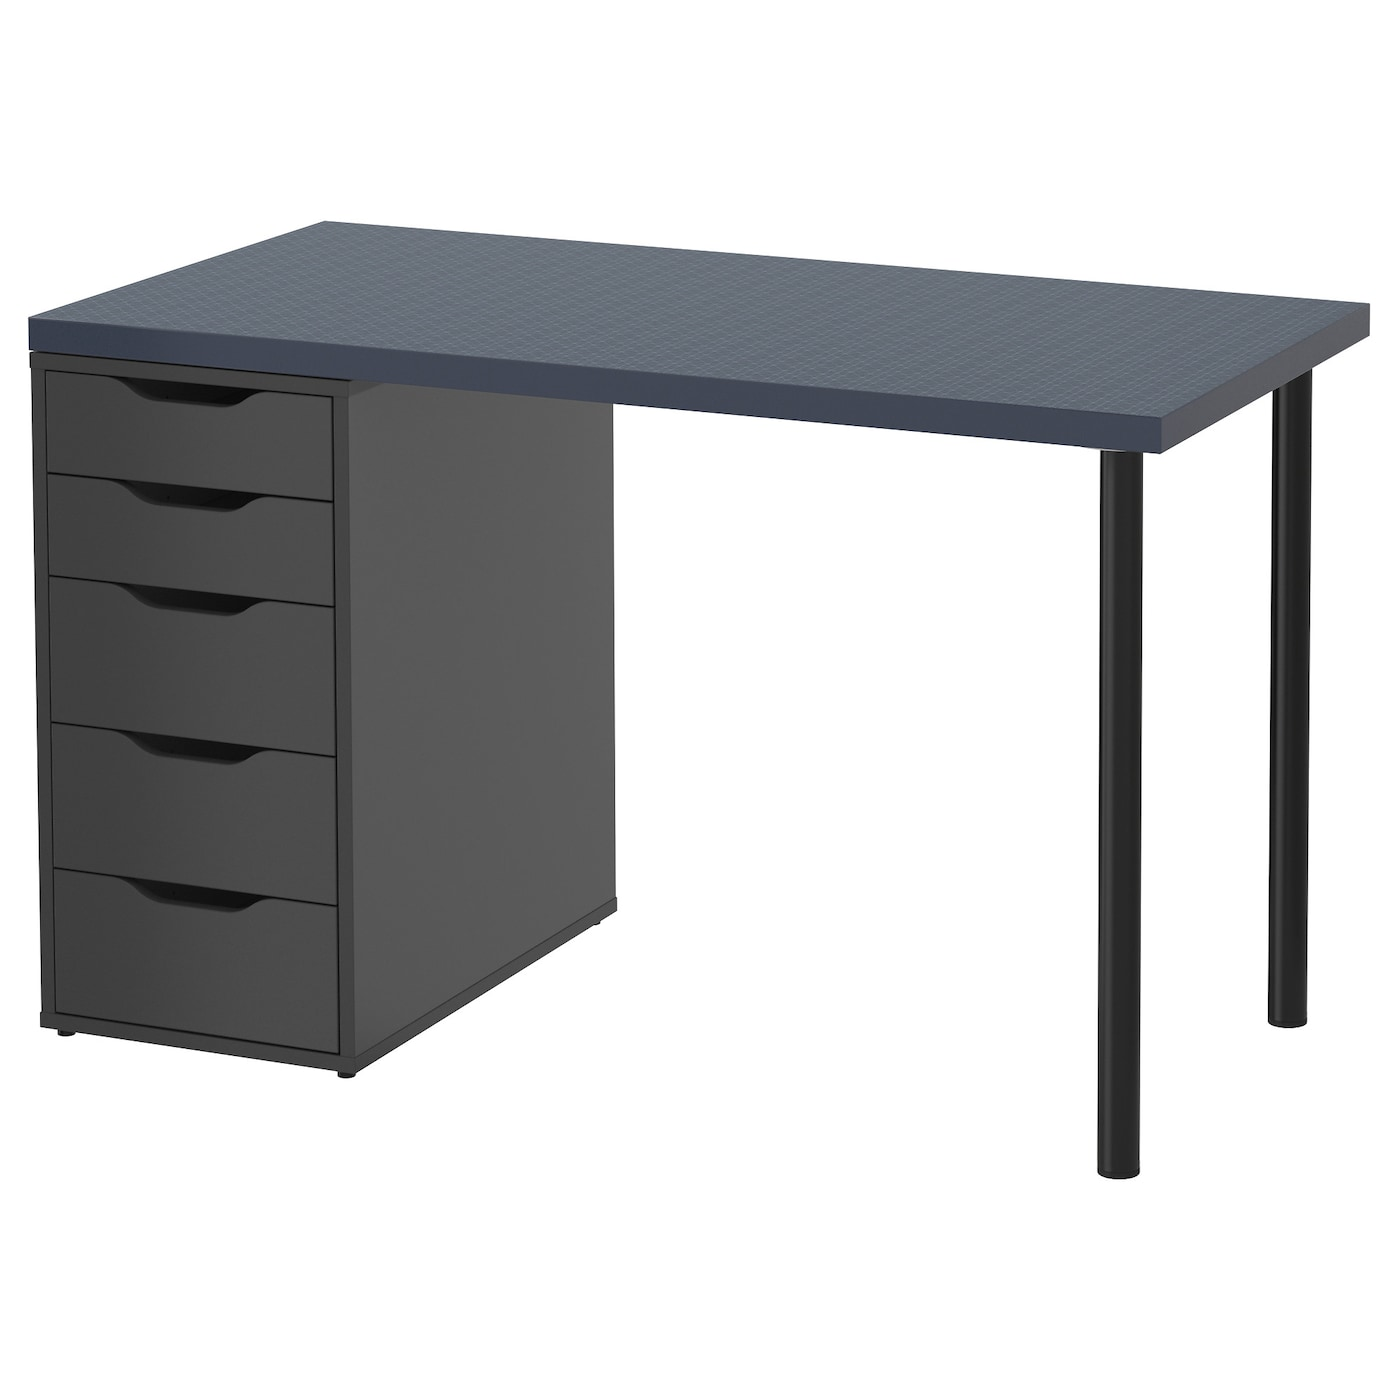 alex linnmon table geometric blue black 120 x 60 cm ikea. Black Bedroom Furniture Sets. Home Design Ideas